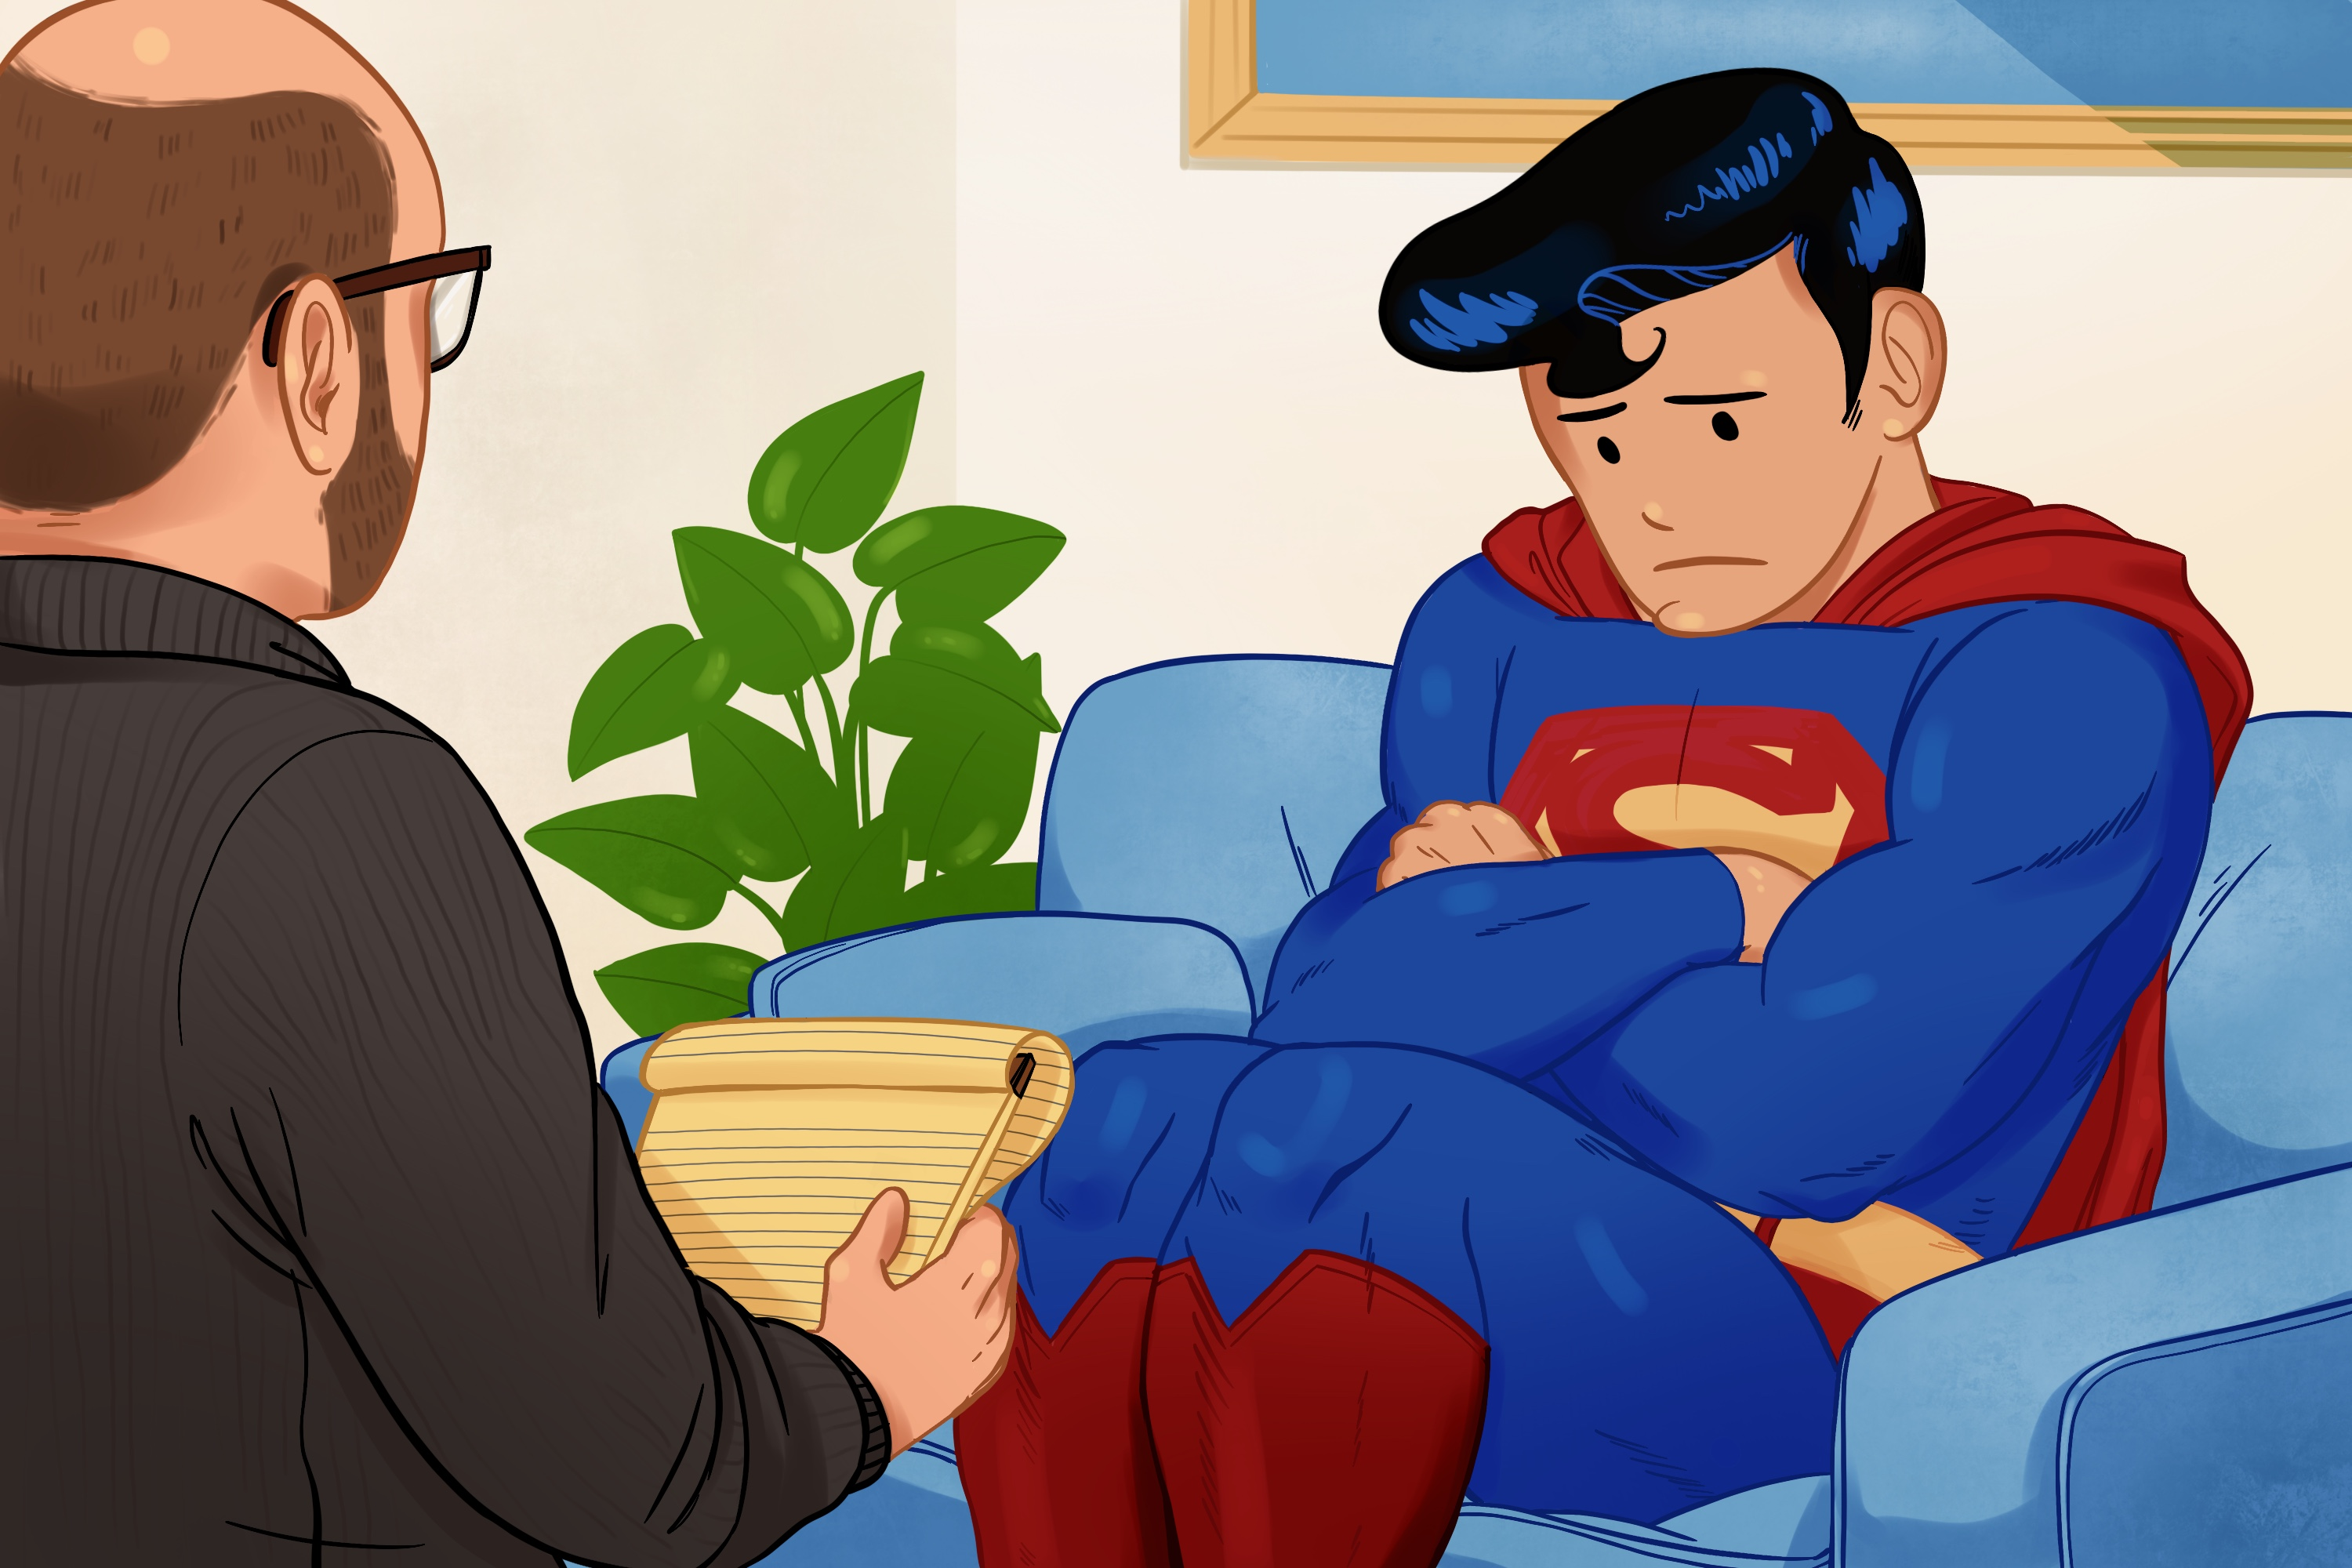 Illustration of Superman sitting on a couch looking upset and talking to a therapist